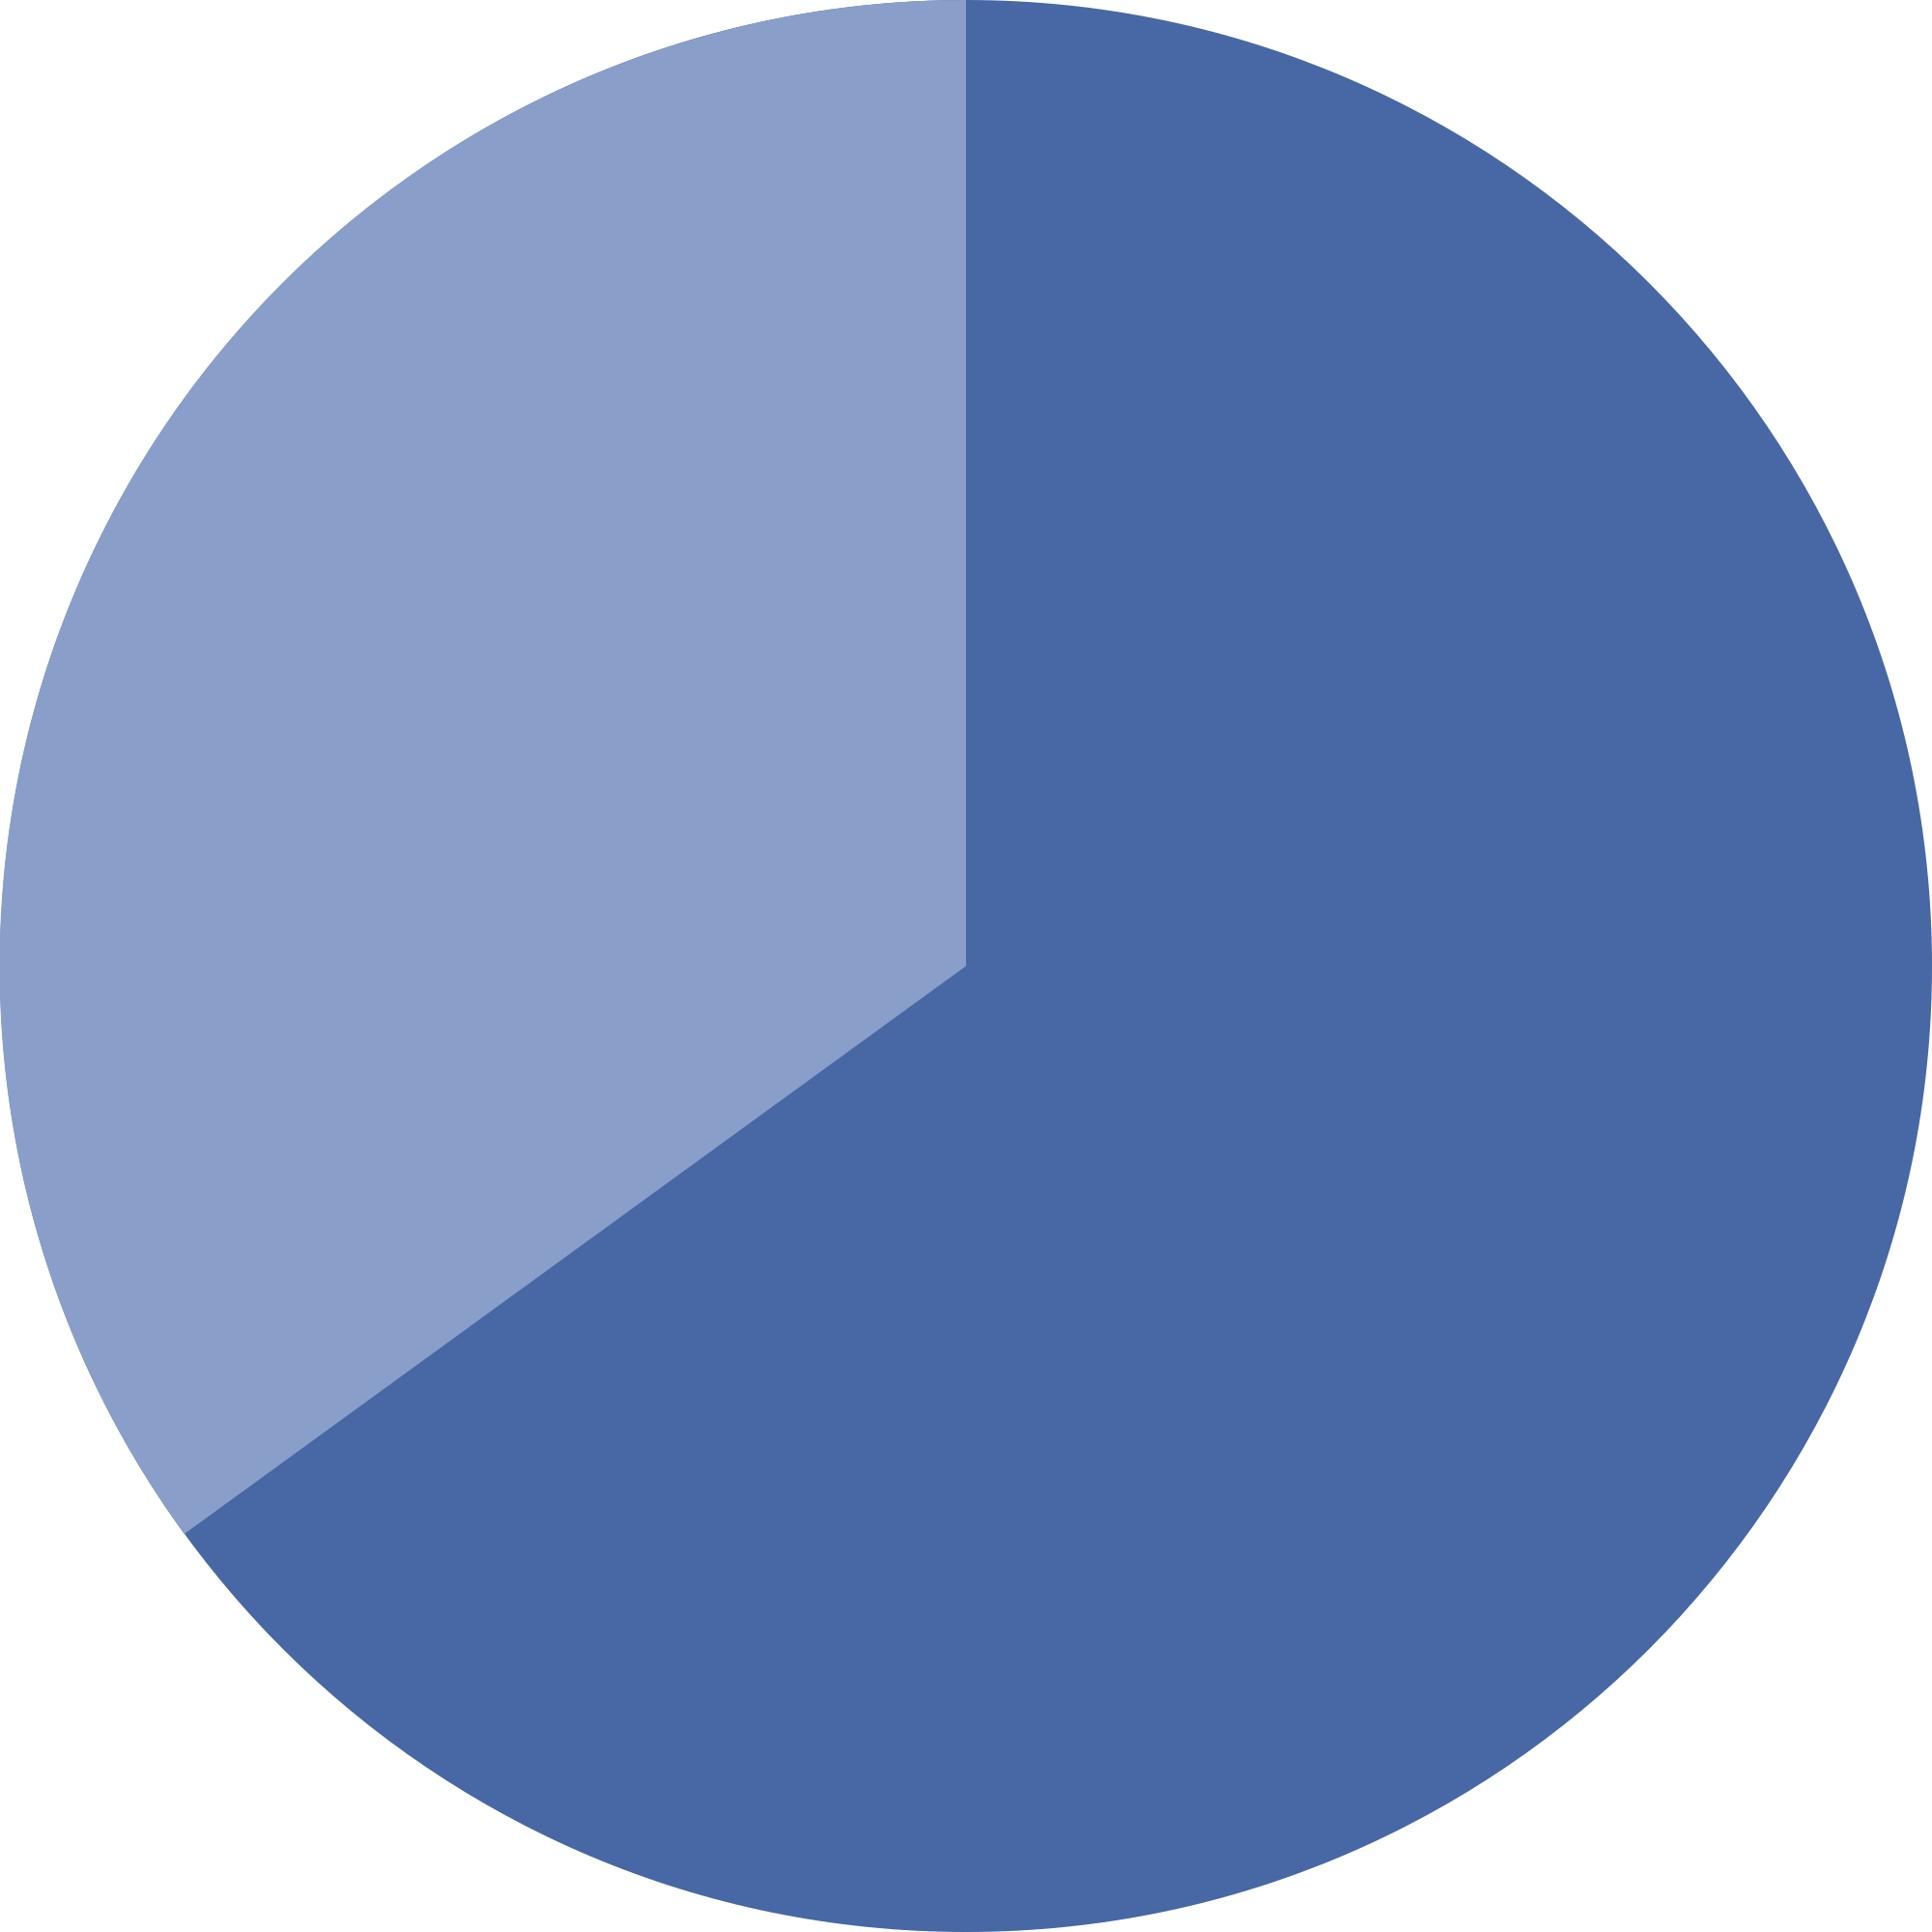 Pie chart png transparent. File svg wikimedia commons